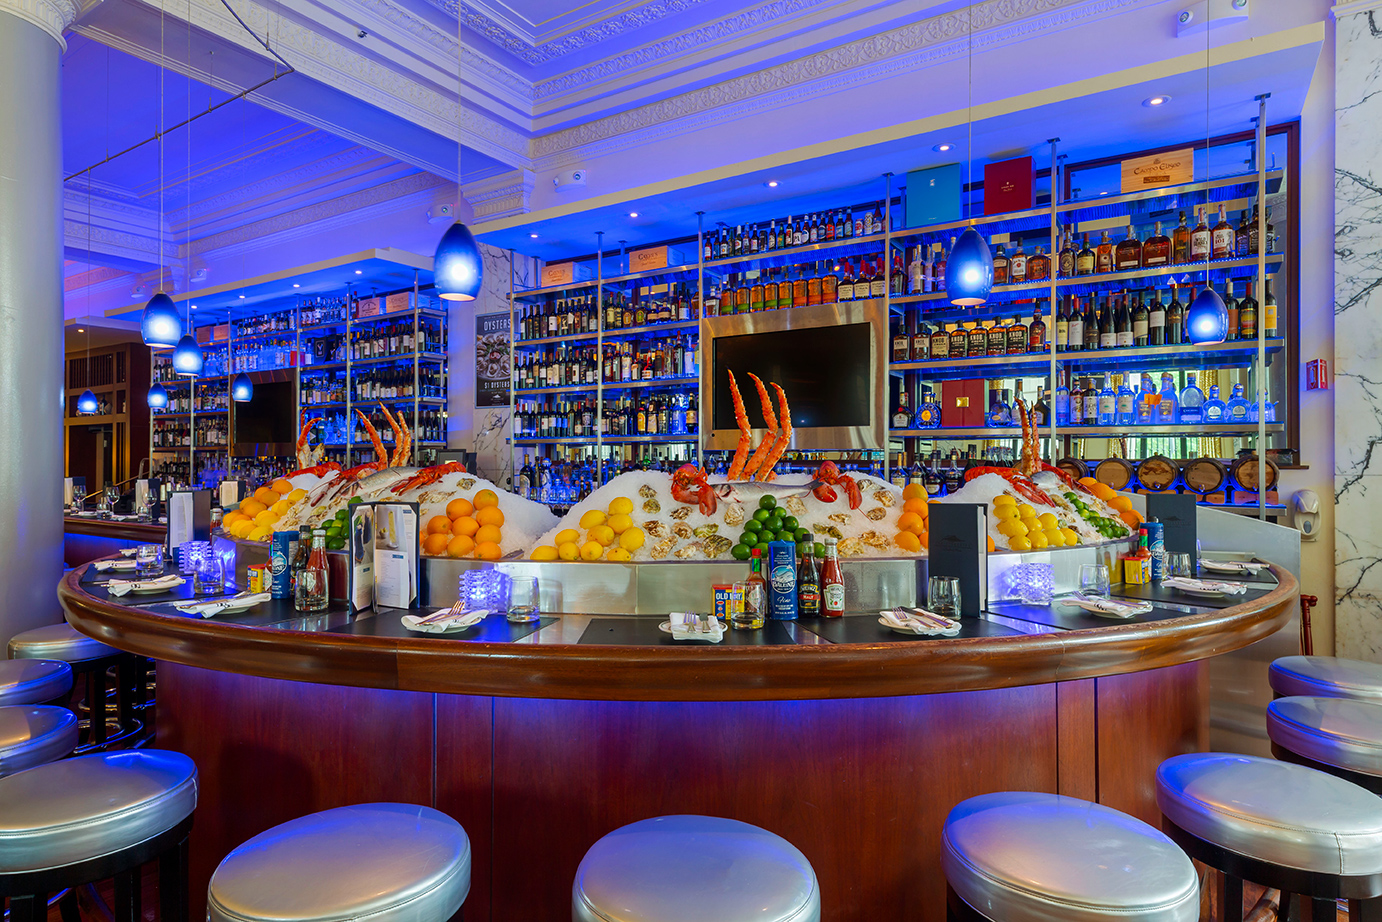 Blue-Lit Restaurant With Fresh Seafood Bar